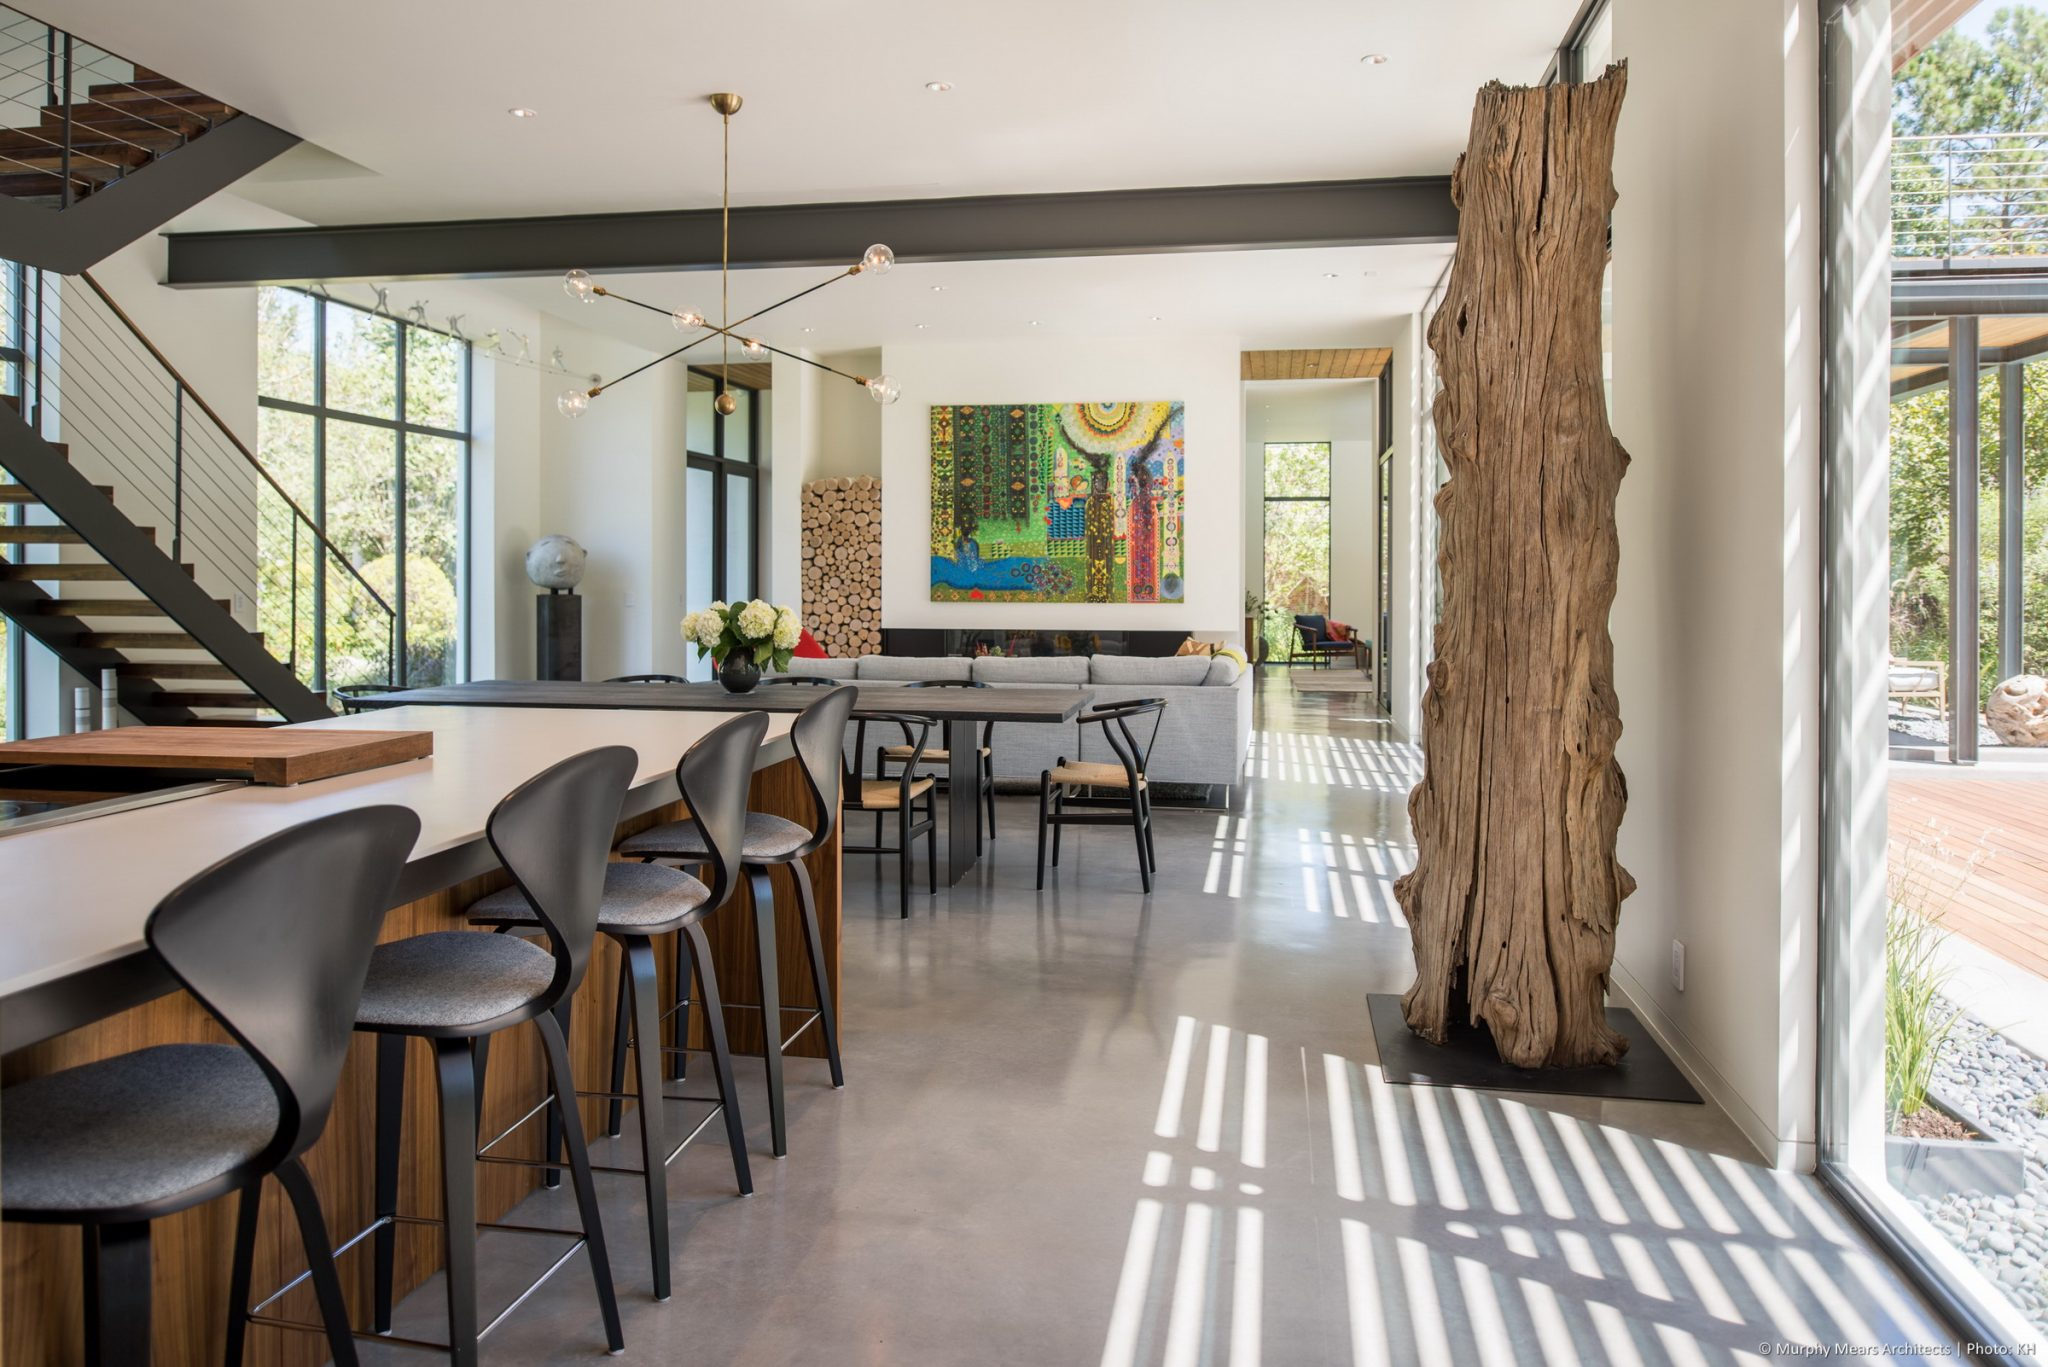 Carlton Woods Residence -  Living-dining-kitchen space with a long view across the entry and into the family room beyond.